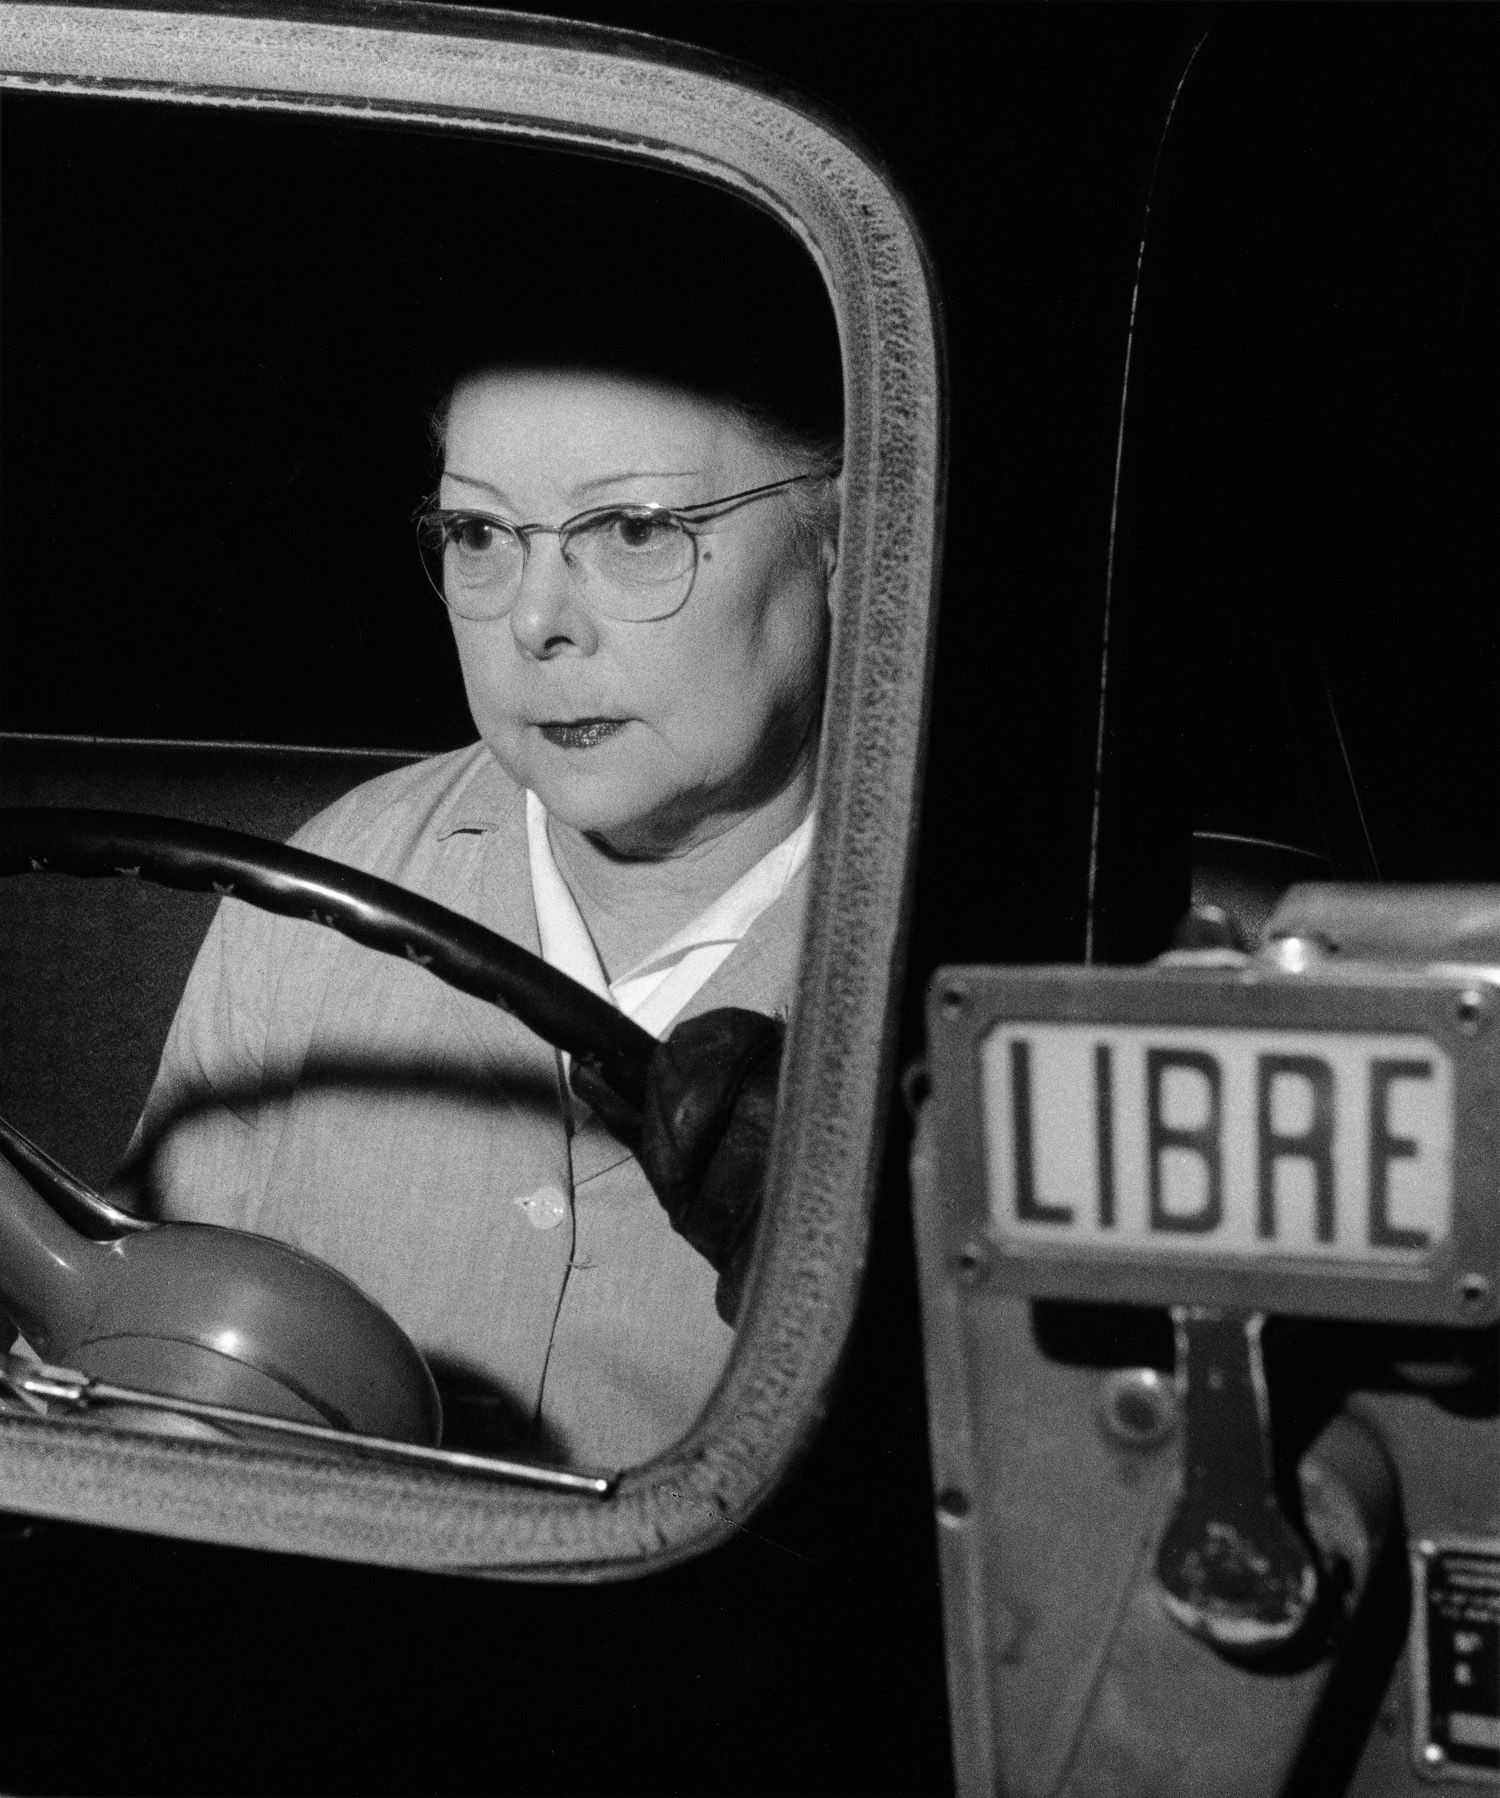 Female taxidriver, Paris, France, 1954 by Nico Jesse